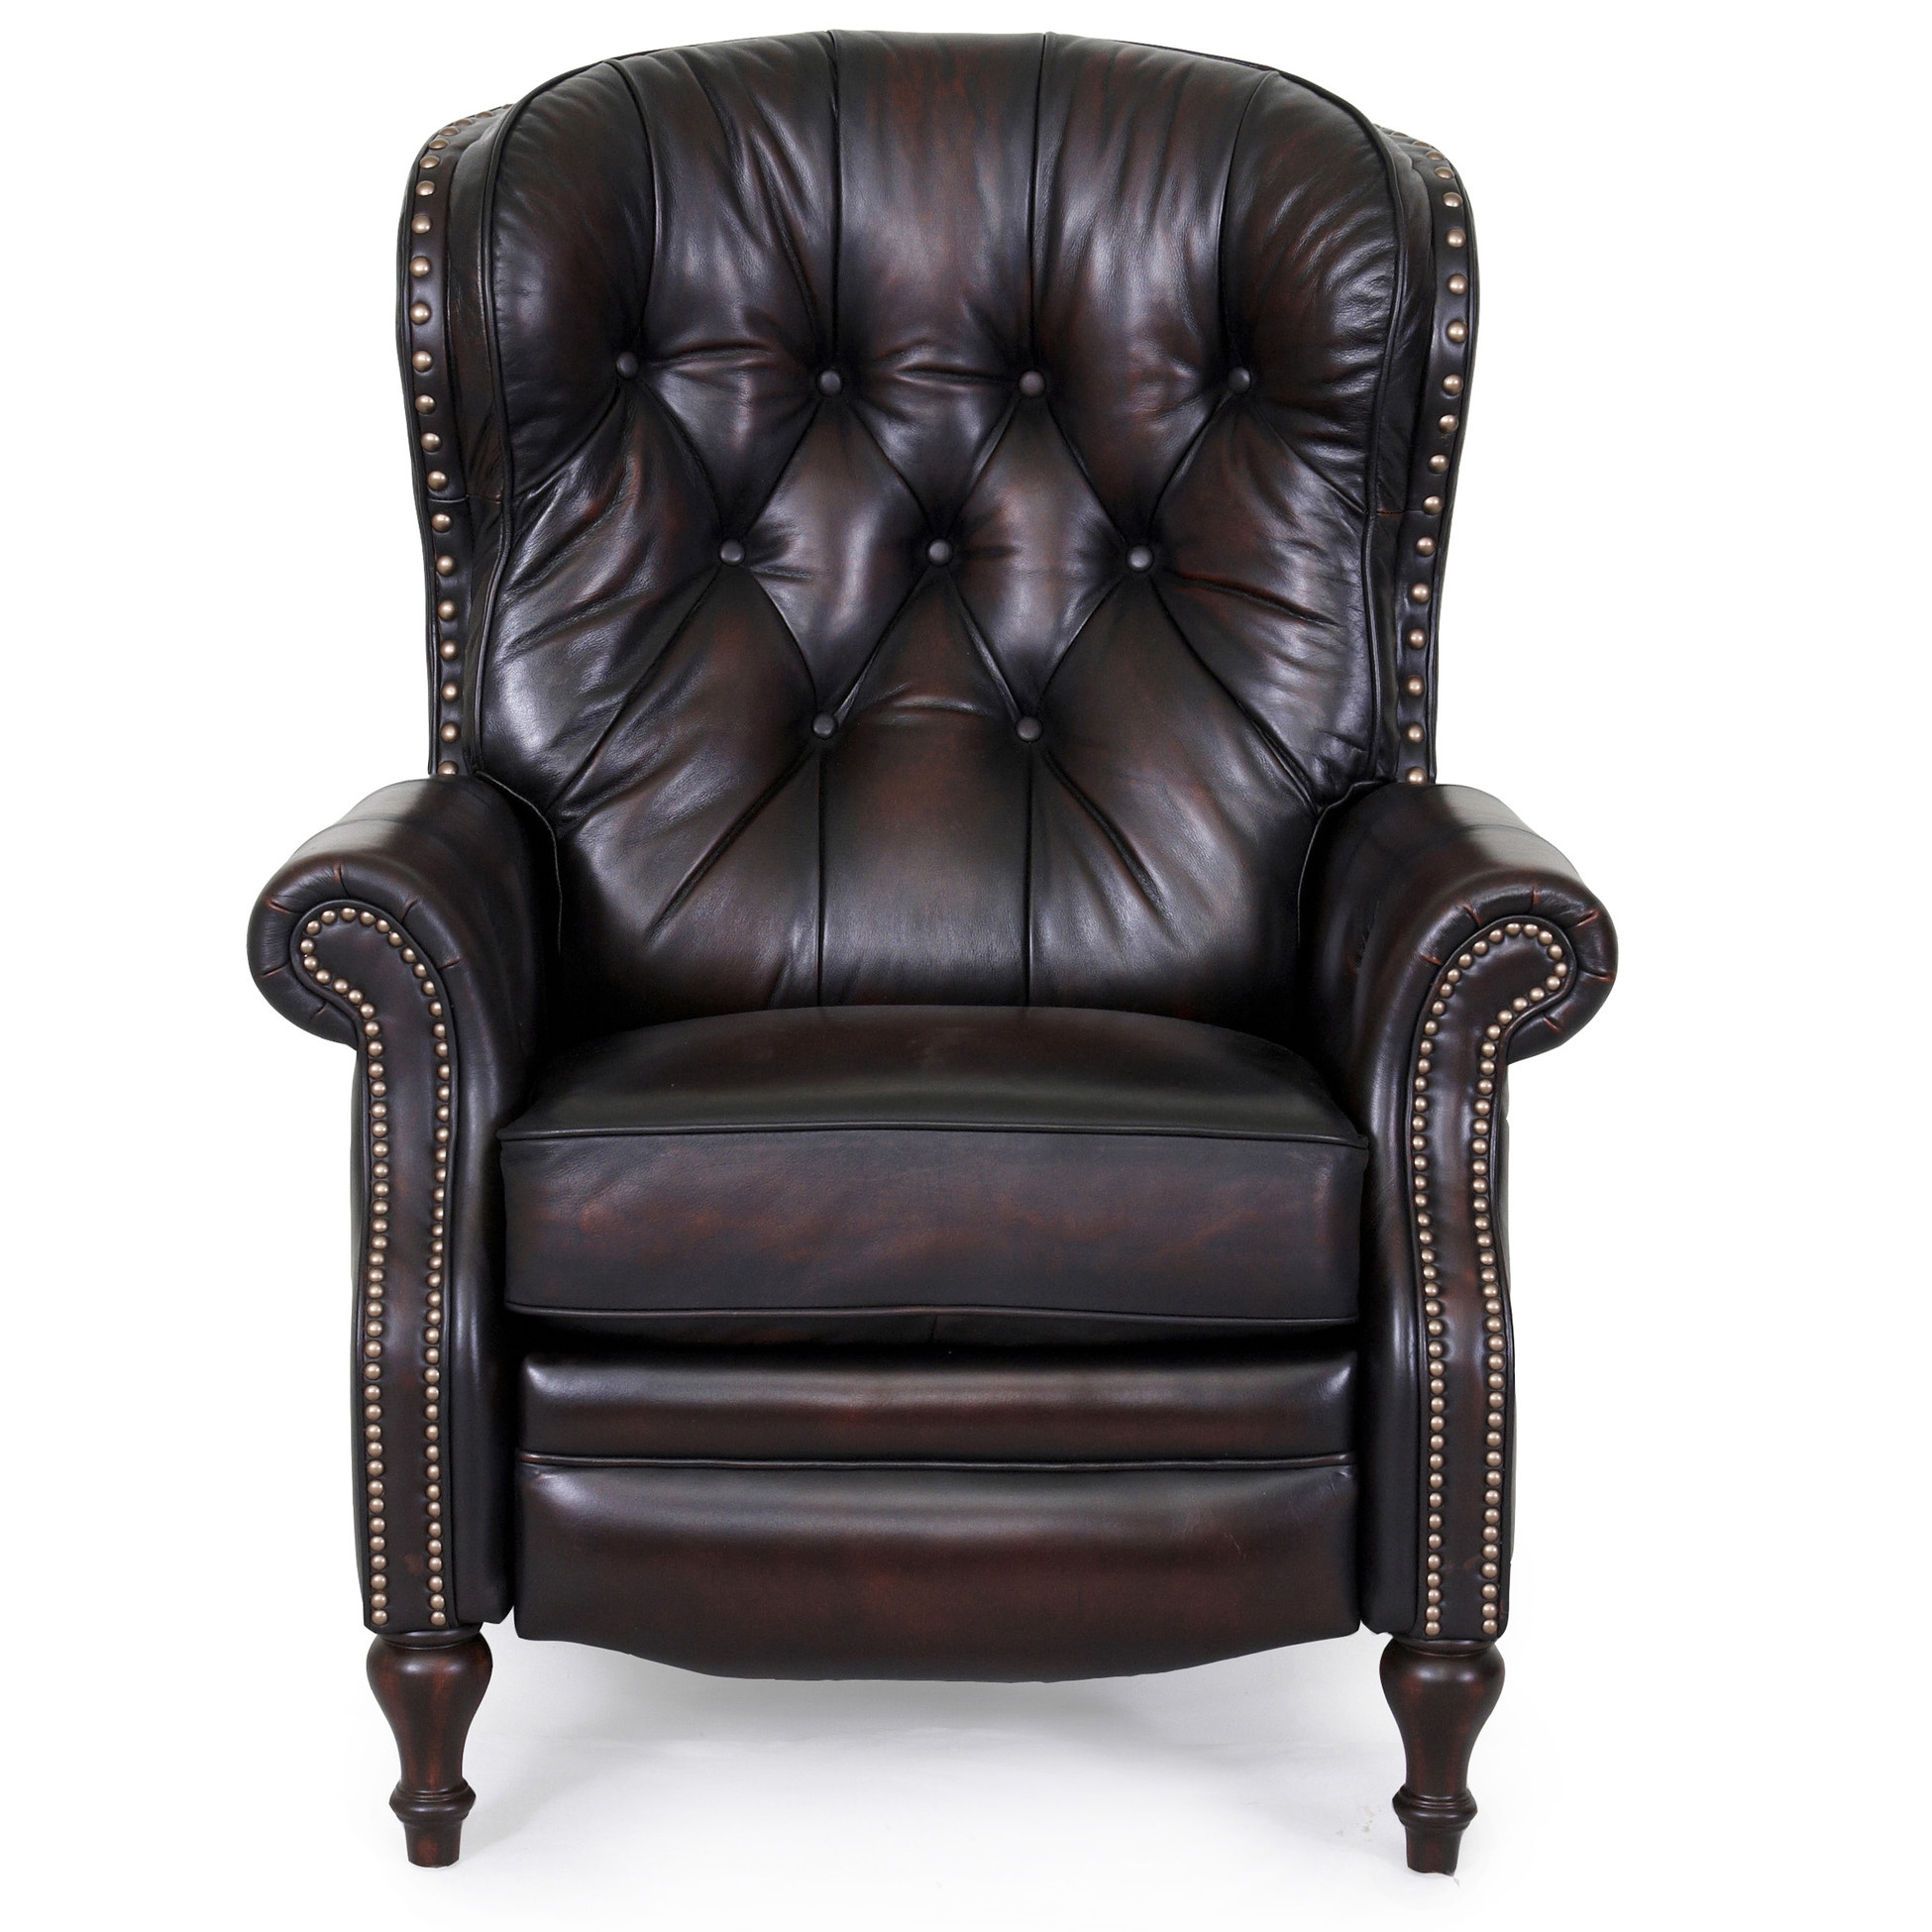 Leather Recliner Chairs Barcalounger Kendall Ii Recliner Chair Leather Recliner